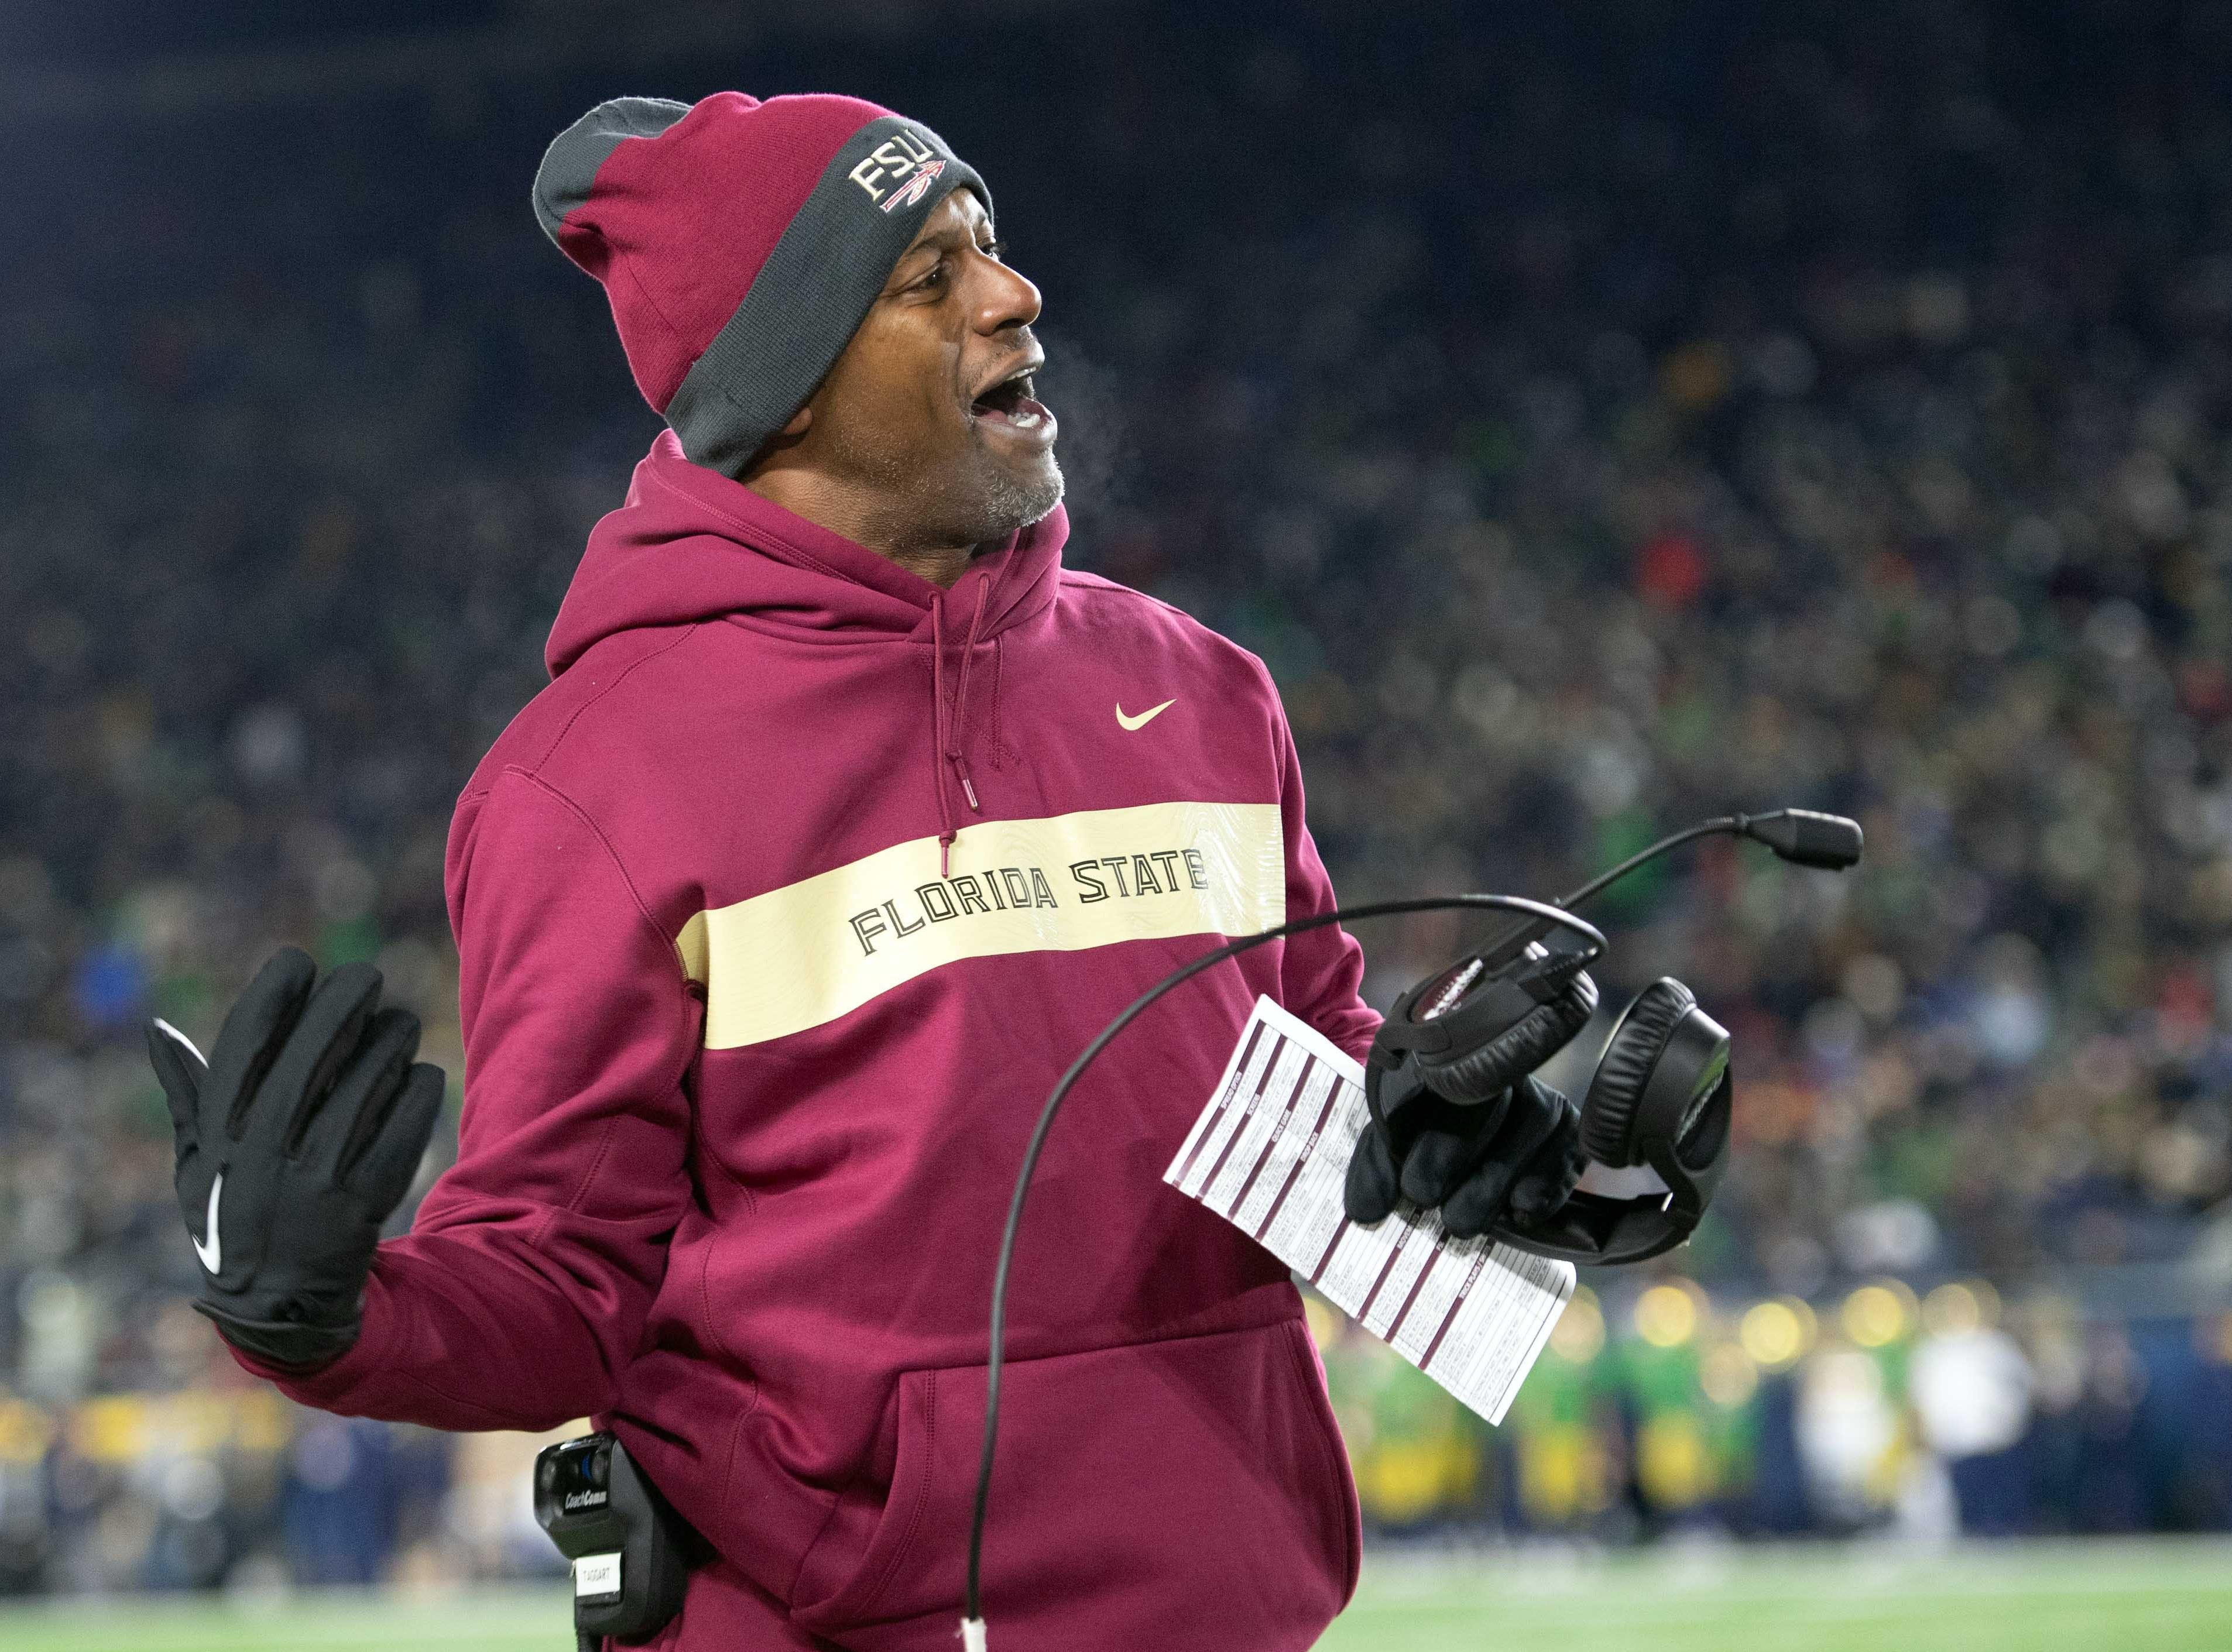 iNov 10, 2018; South Bend, IN, USA; Florida State Seminoles head coach Willie Taggart yells to an official in the second quarter against the Notre Dame Fighting Irish at Notre Dame Stadium. Mandatory Credit: Matt Cashore-USA TODAY Sports